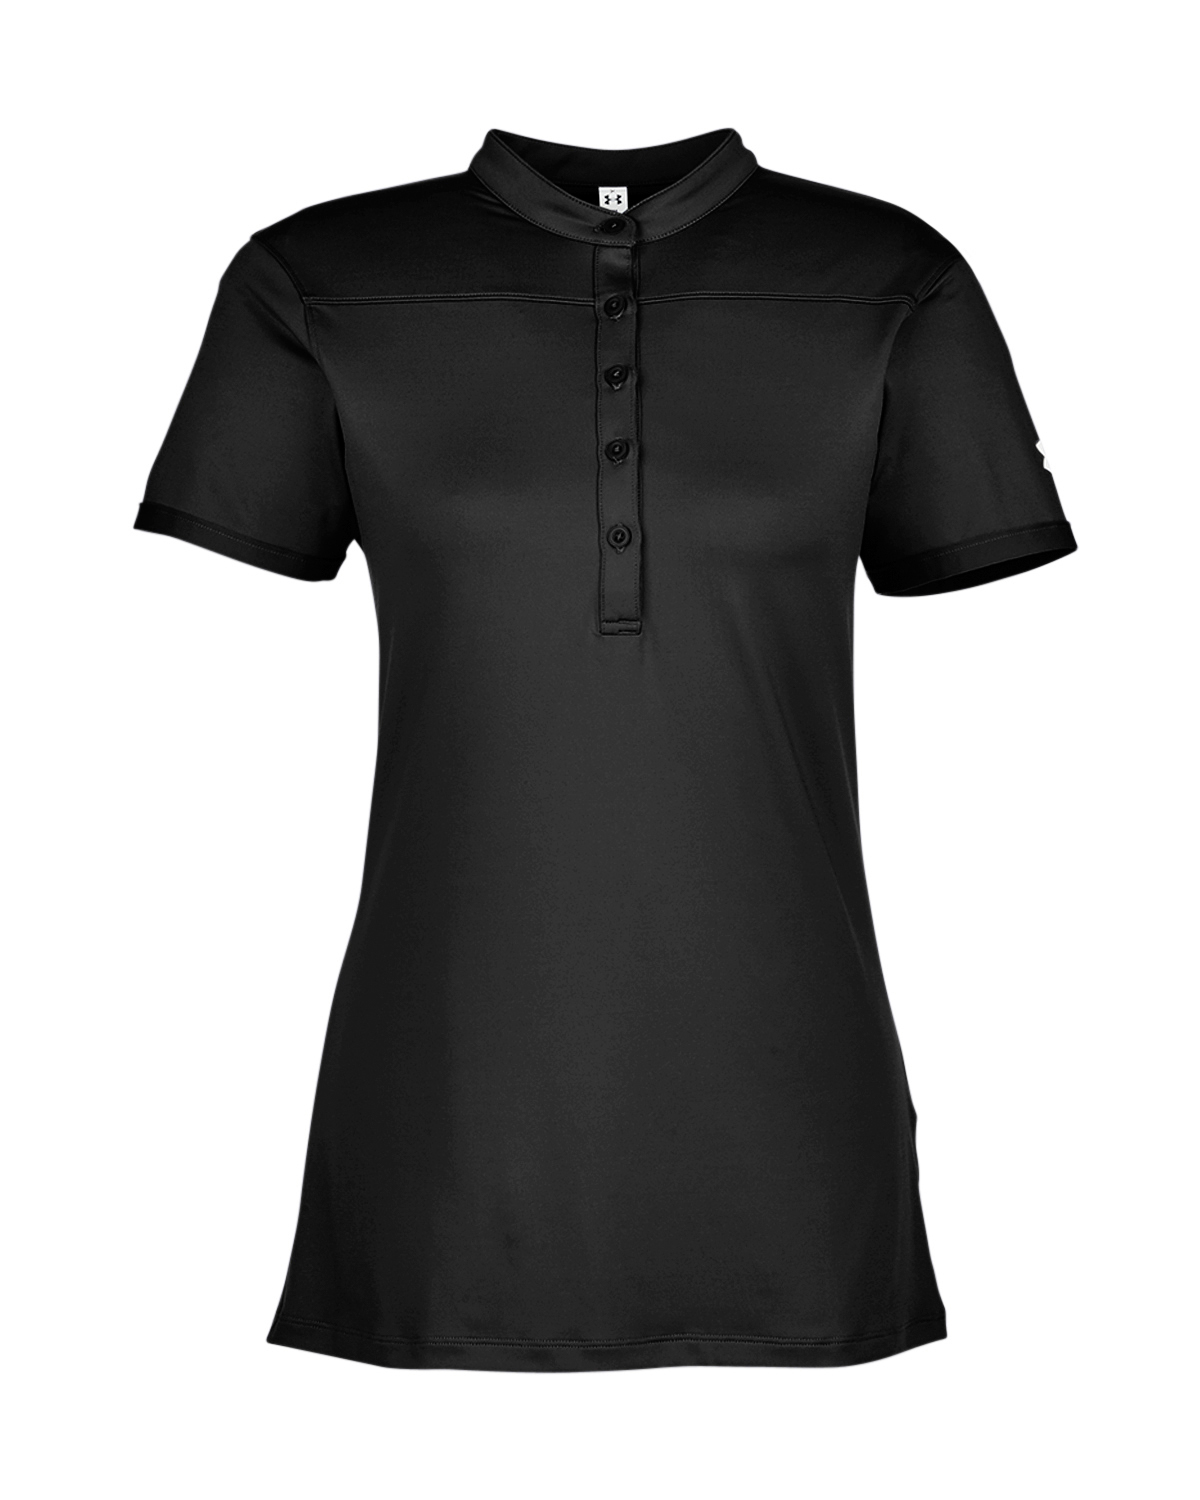 Under Armour 1317218 - Ladies' Corporate Performance Polo 2.0